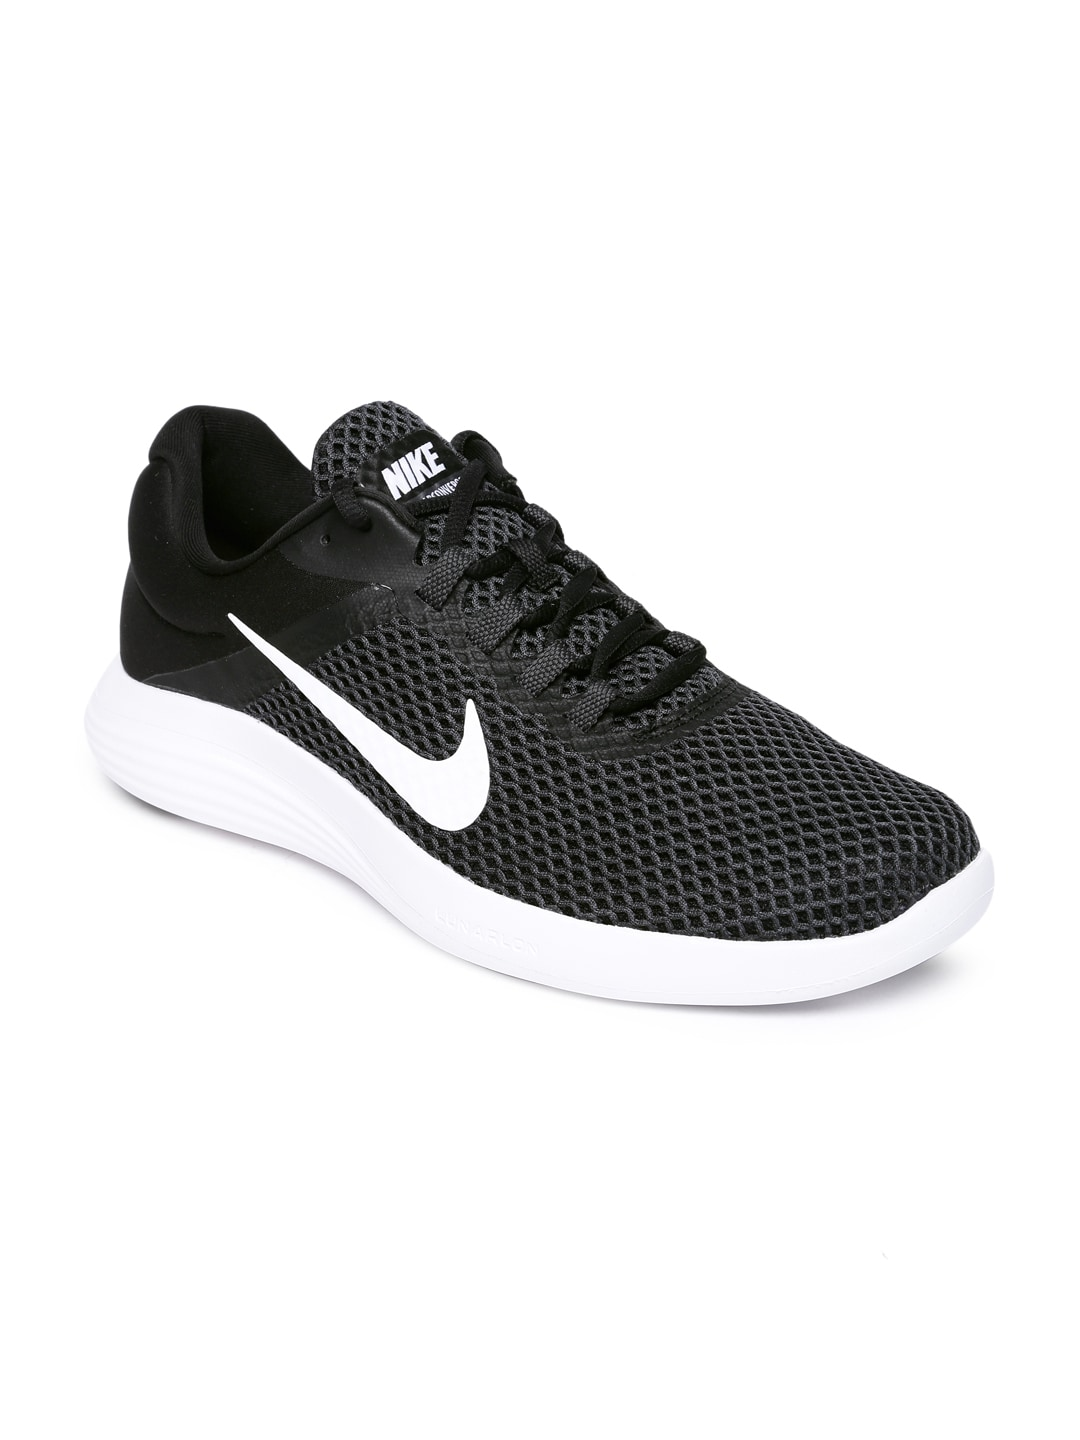 timeless design 561e0 79017 Nike Shoes - Buy Nike Shoes for Men, Women   Kids Online   Myntra